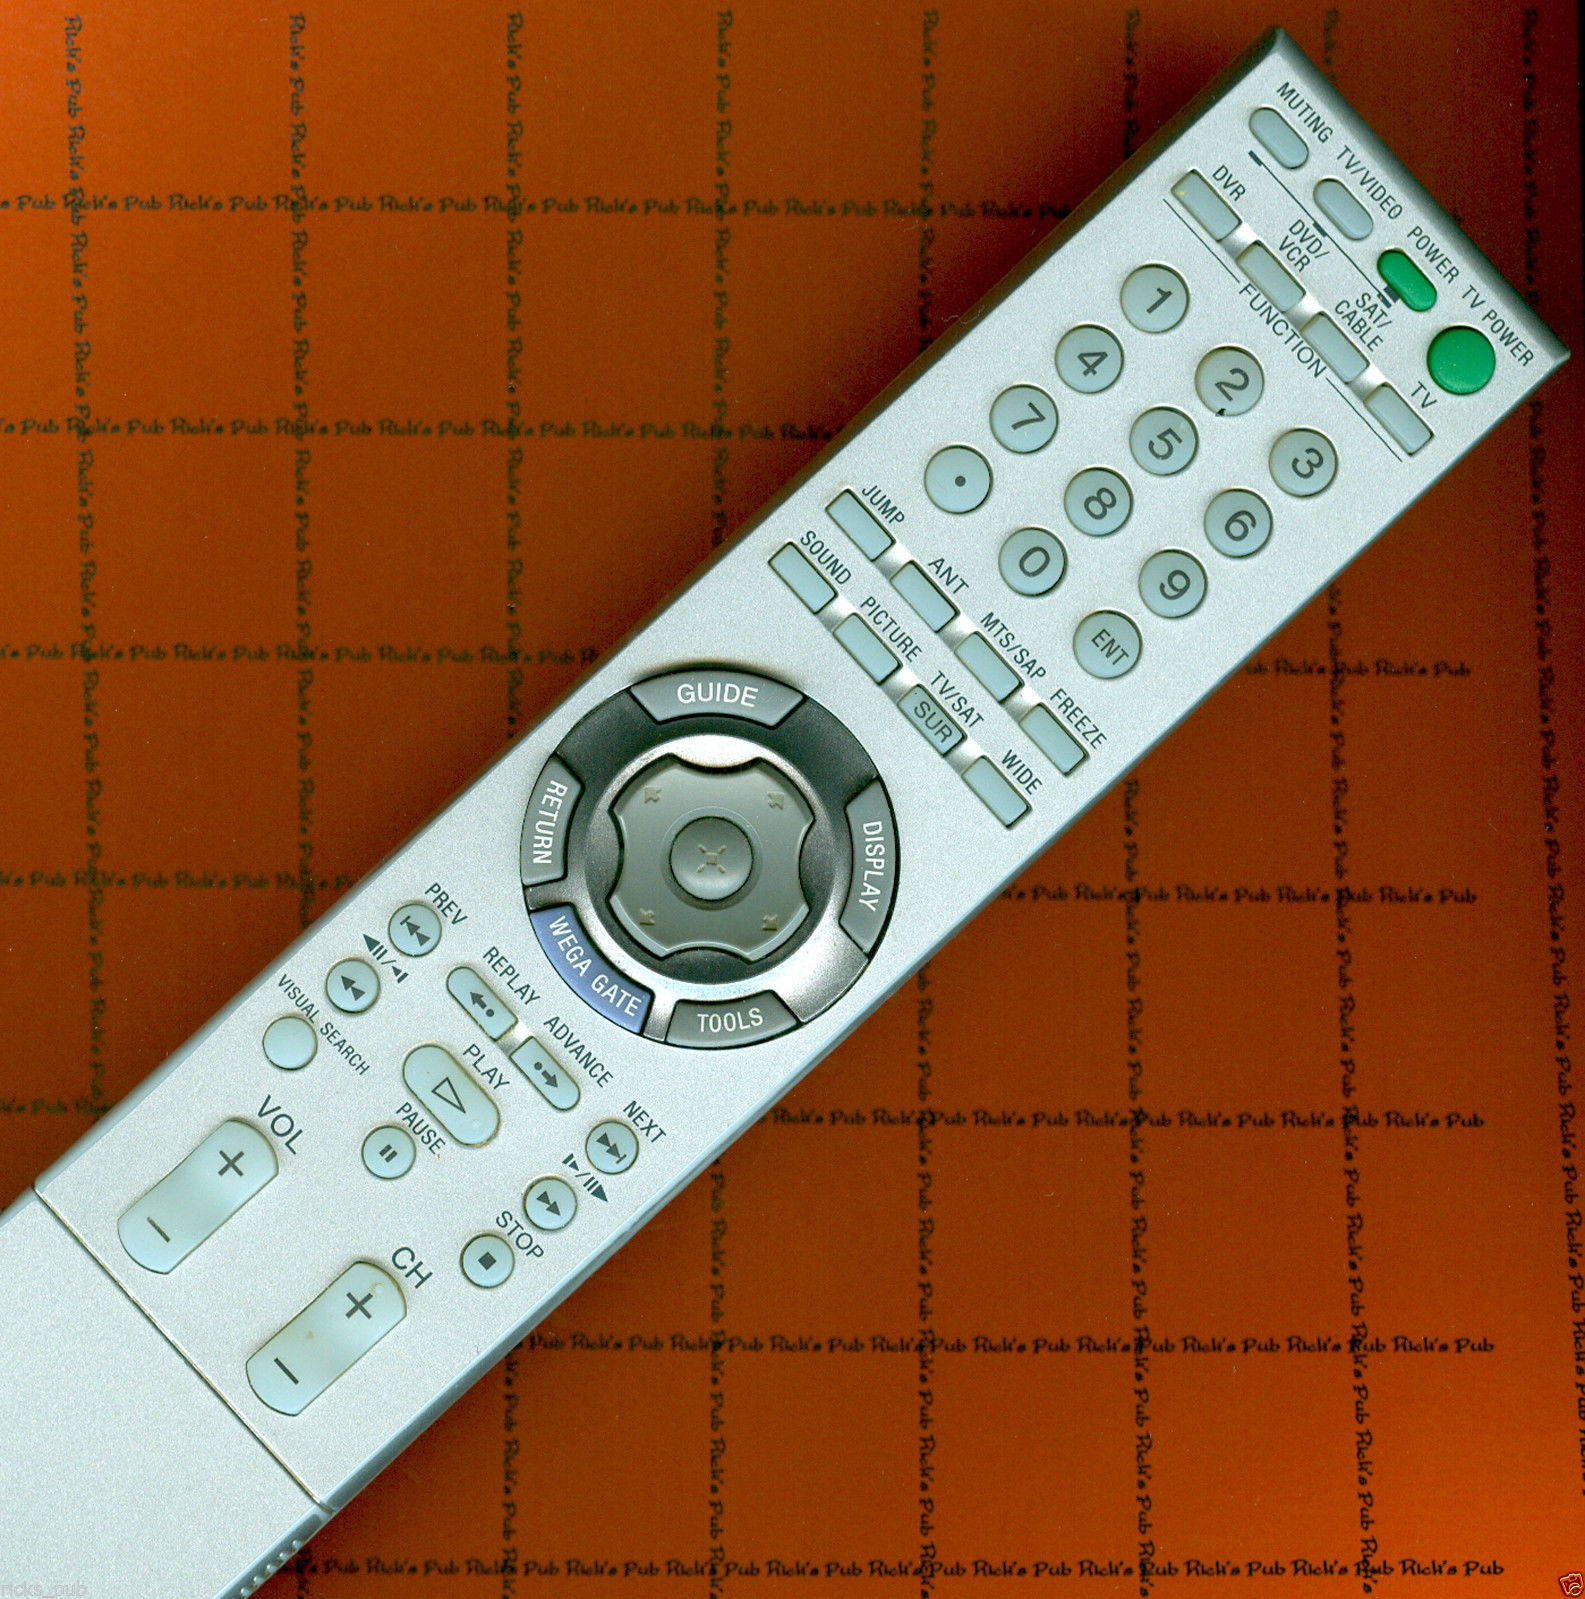 Sony RM YD003 Tv Remote ✚ Manual KDF E42A10 And Similar Items